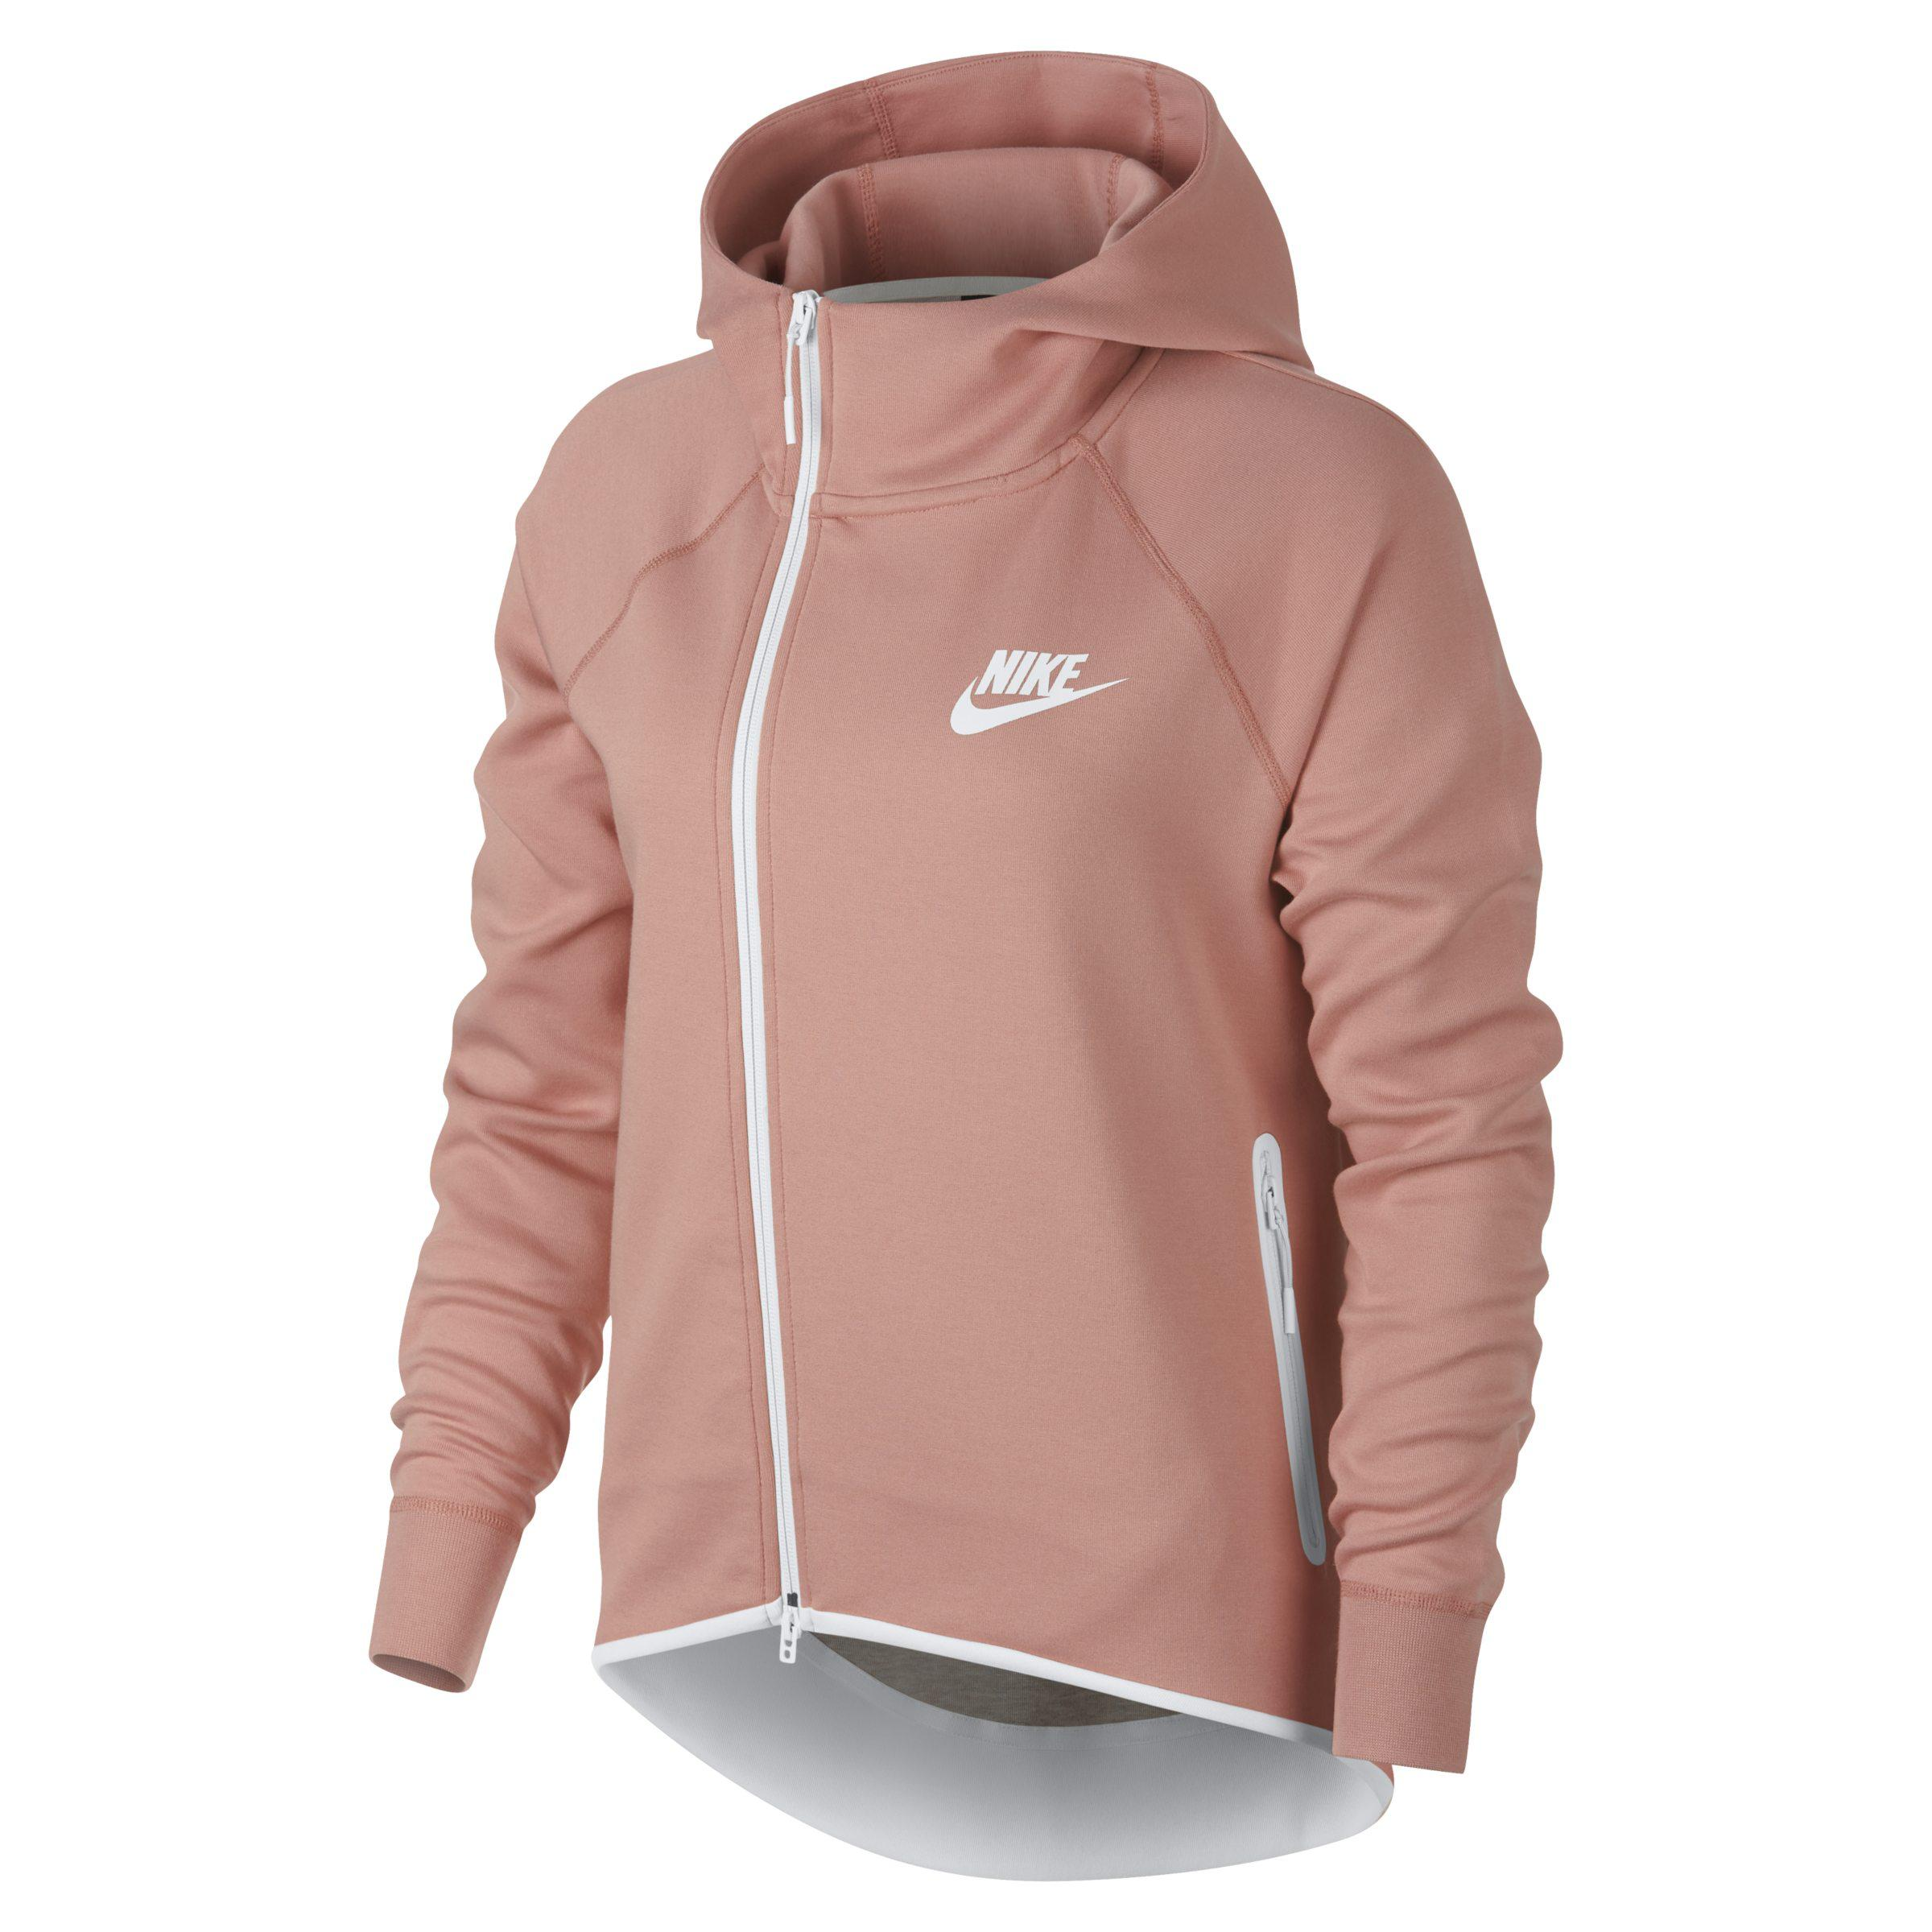 88b45ec43fc8 Nike Sportswear Tech Fleece Full-zip Cape in Pink - Lyst